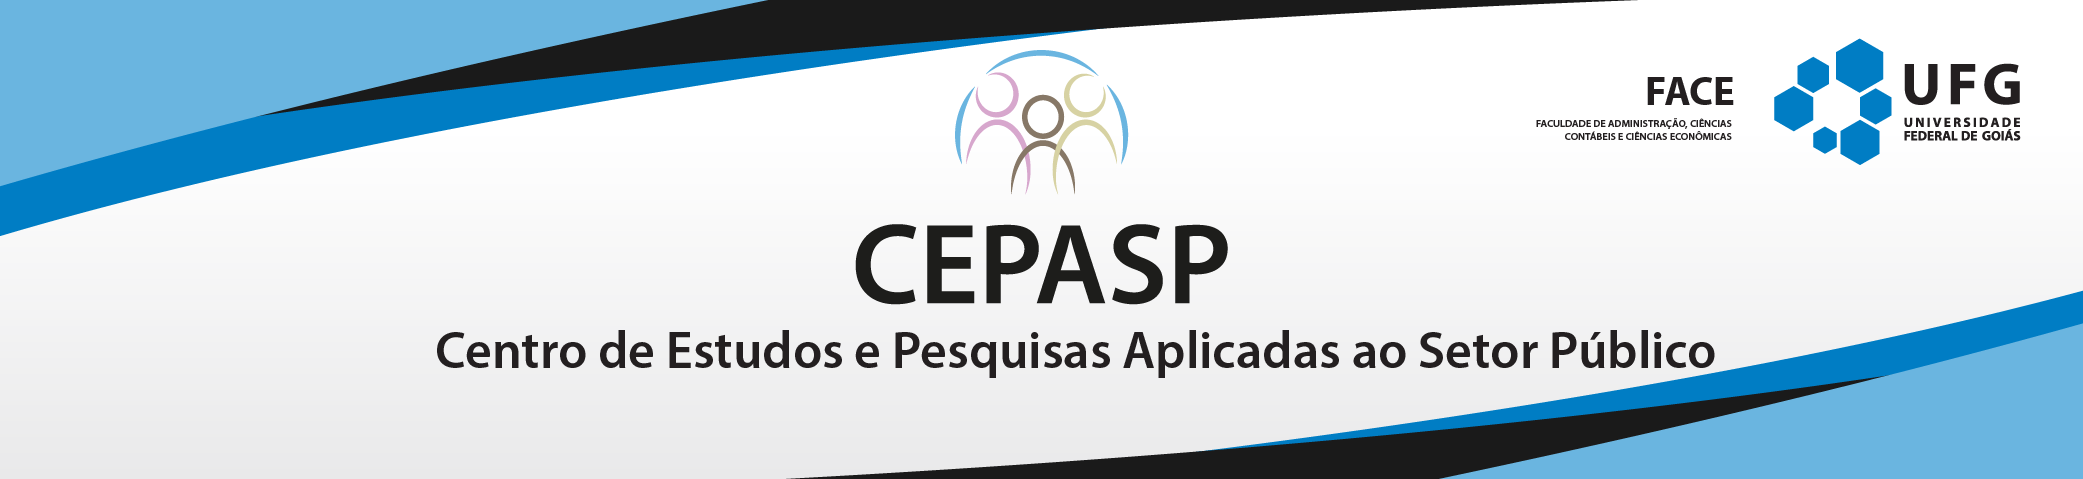 Banner Cepasp